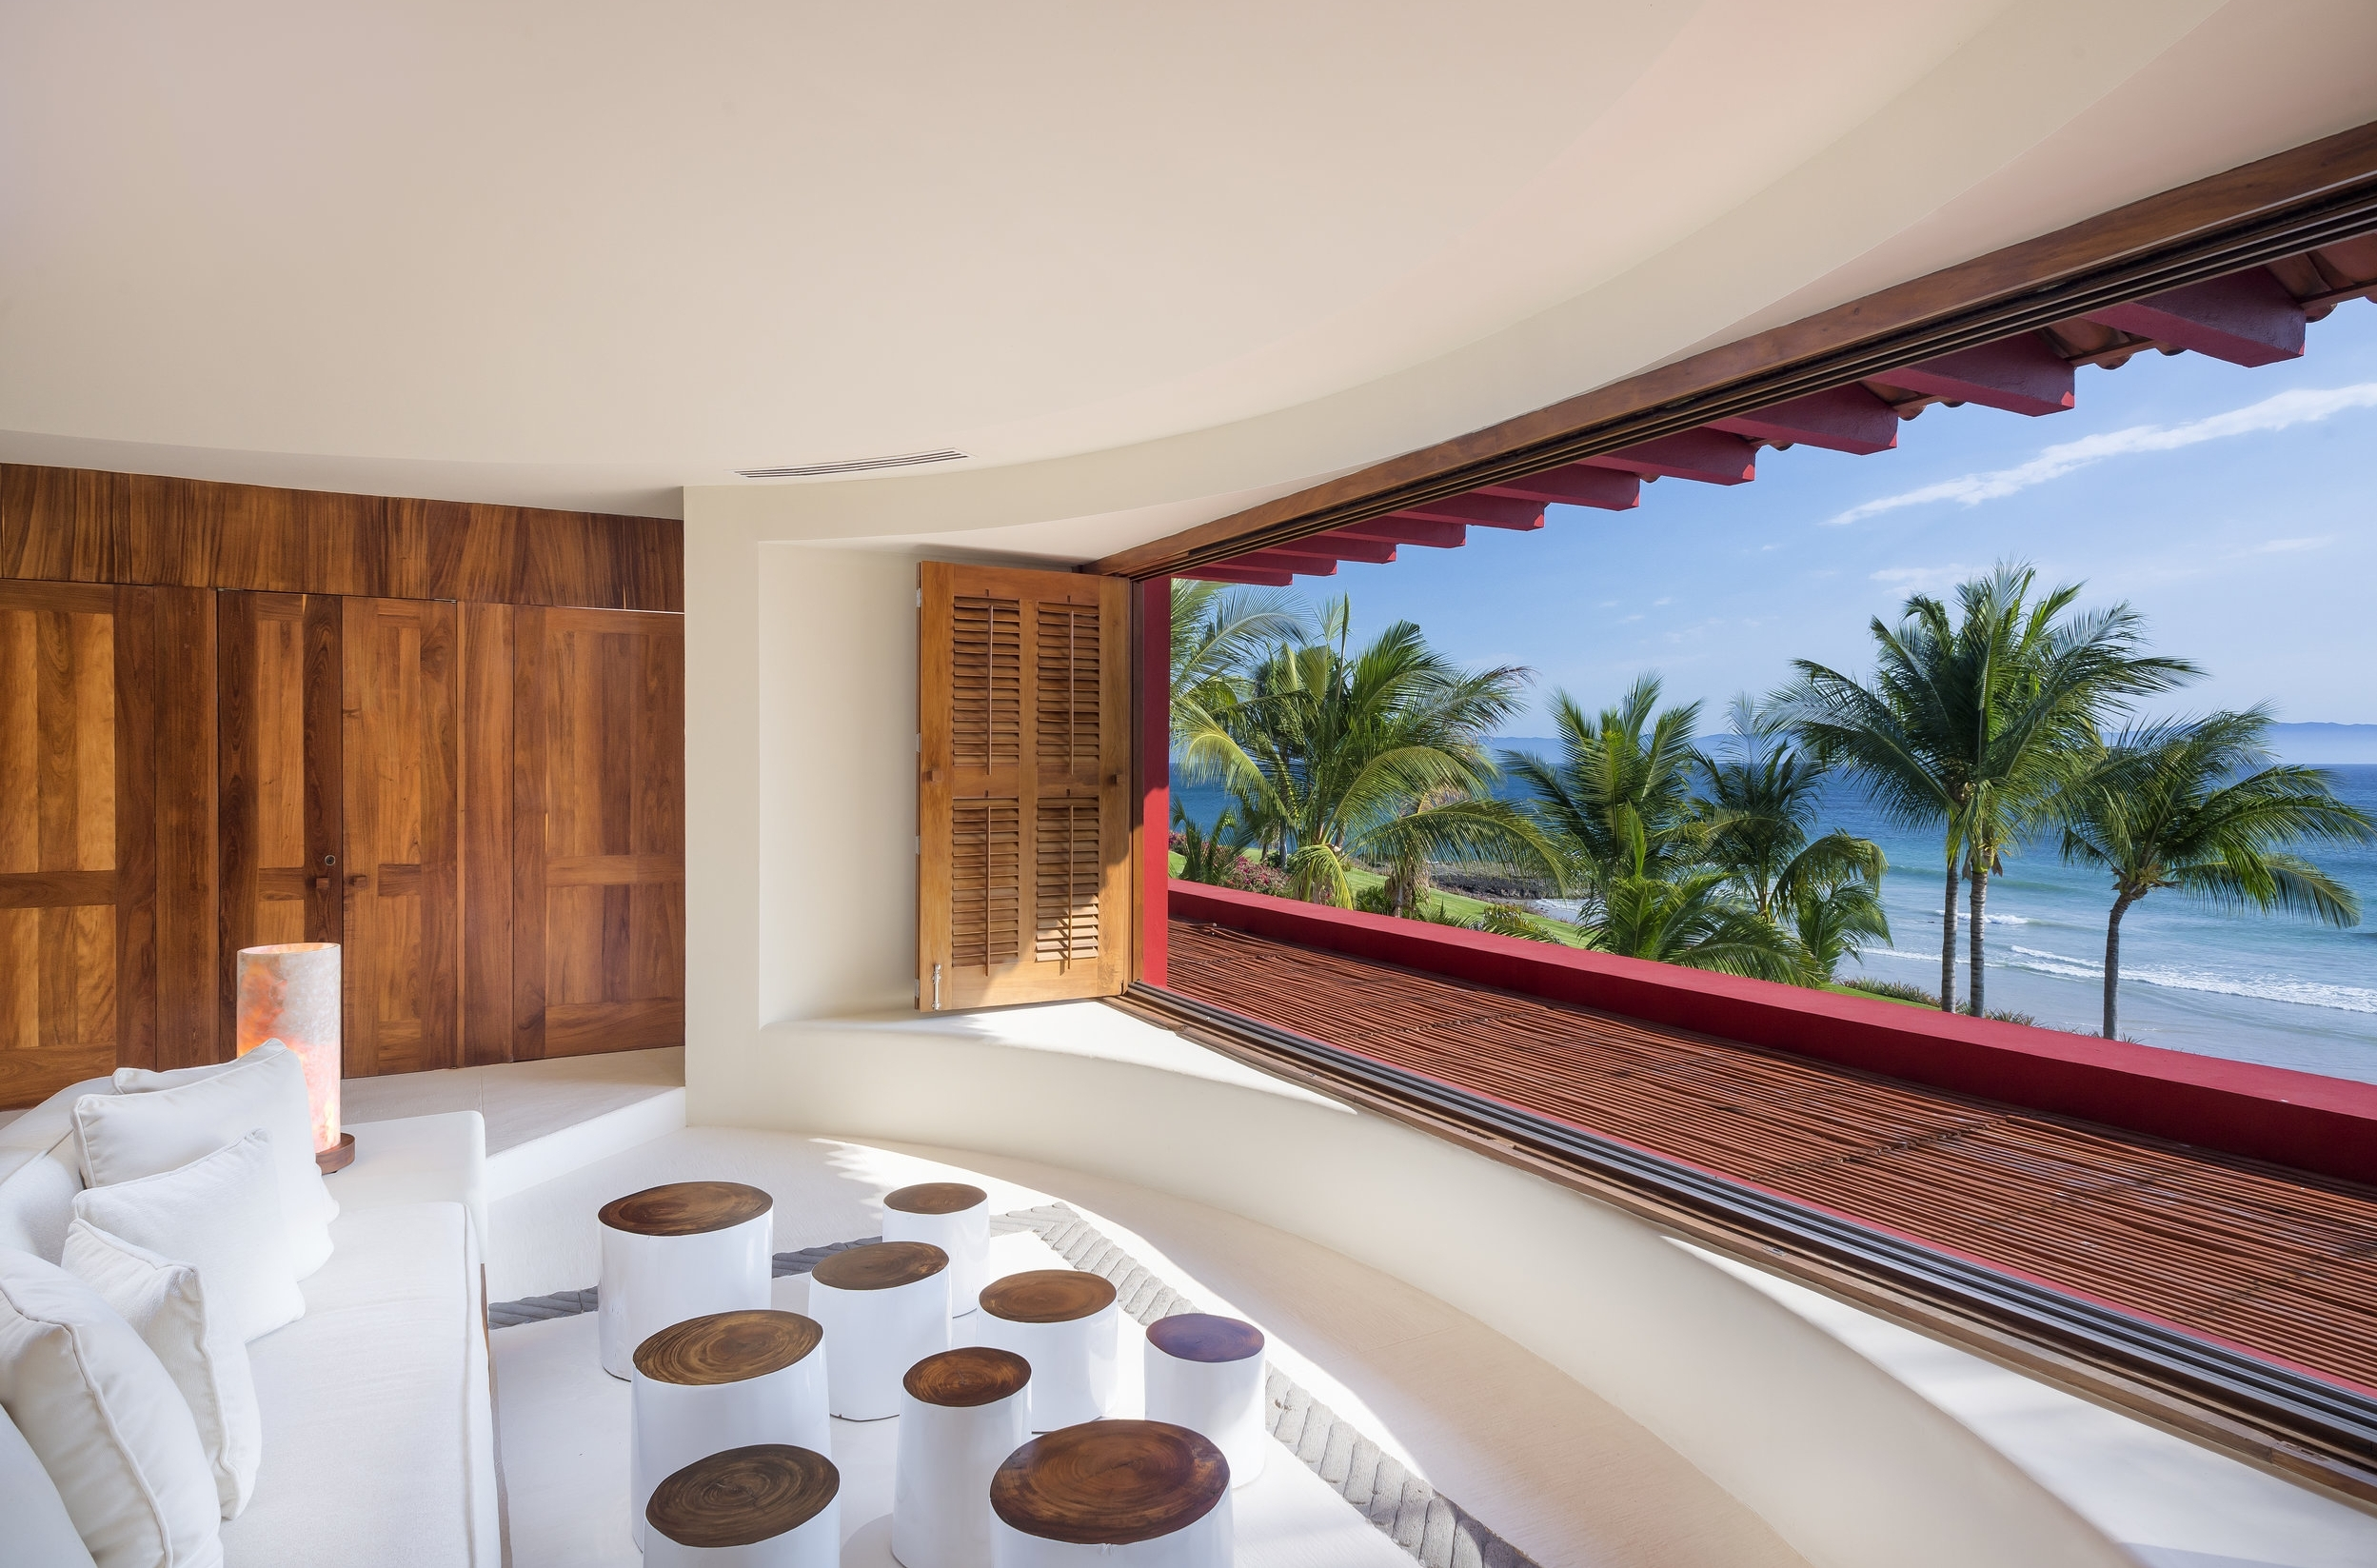 INTERIORThe interior design of The Villa has the highest grade furnishings and fabrics characterized by chic, relaxed décor, accentuated with bold, contrasting shades of Mexican colors. [more]  -